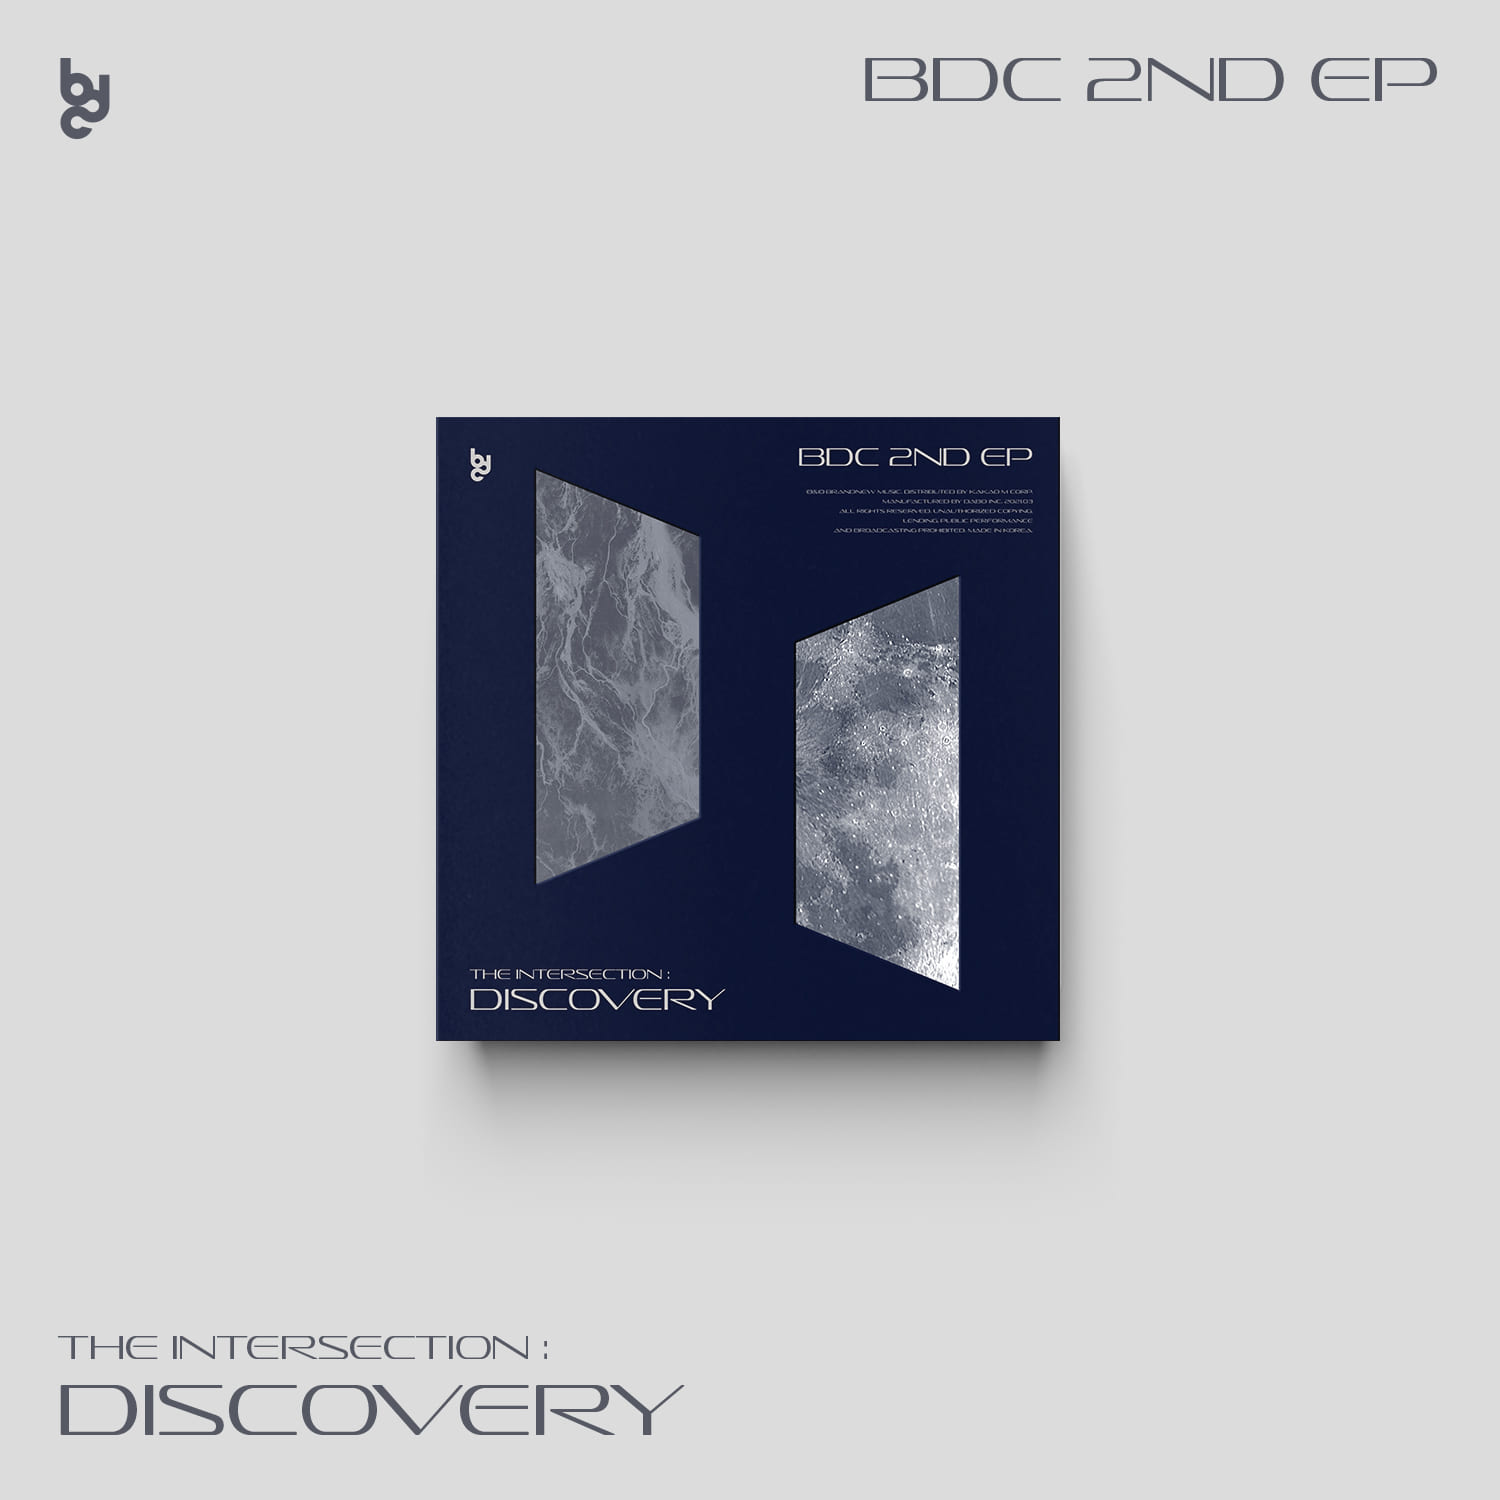 [PRE-ORDER] BDC - EP Album [THE INTERSECTION : DISCOVERY] (REALITY Ver.)케이팝스토어(kpop store)